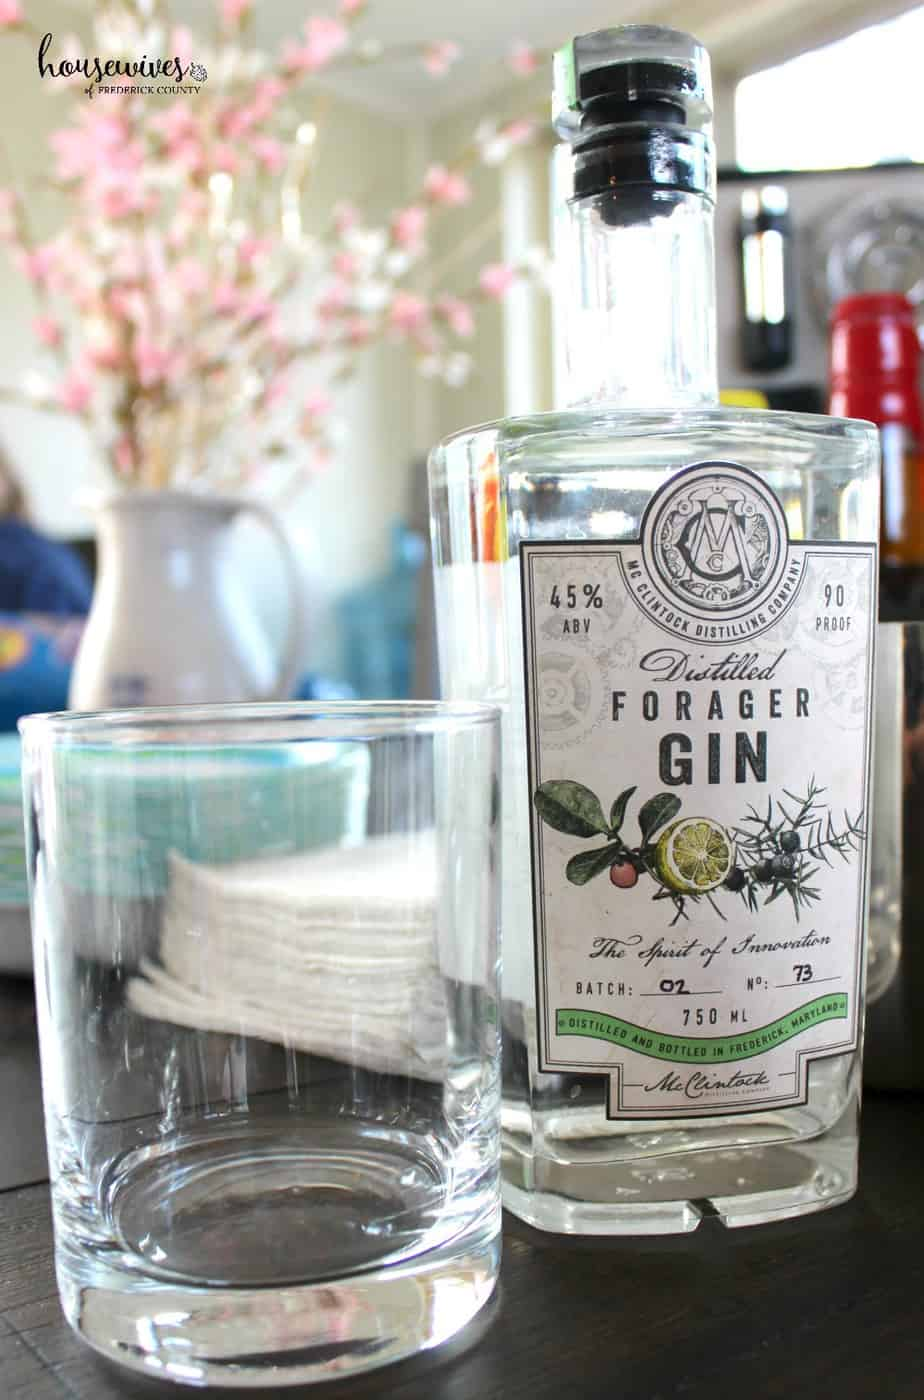 McClintock Distilled Forager Gin